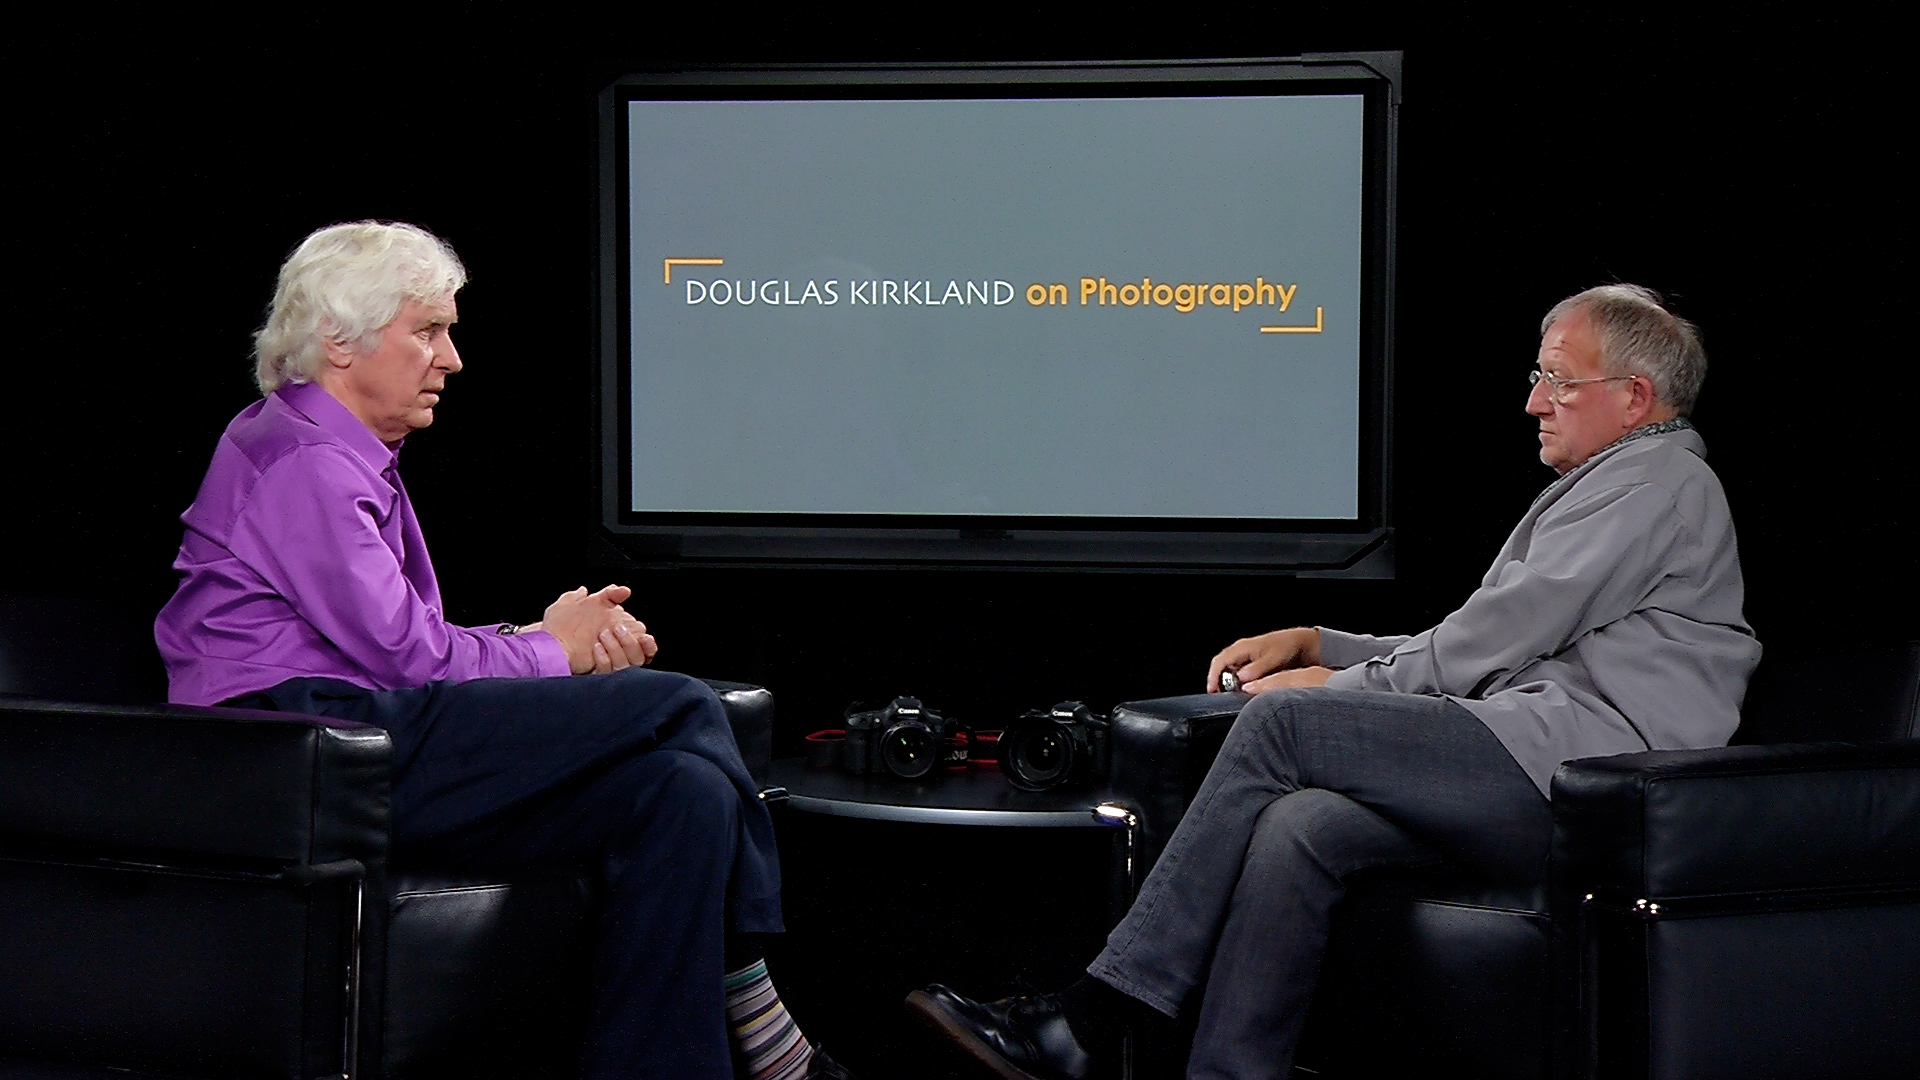 Douglas Kirkland on Photography: A Conversation with Gerd Ludwig course image